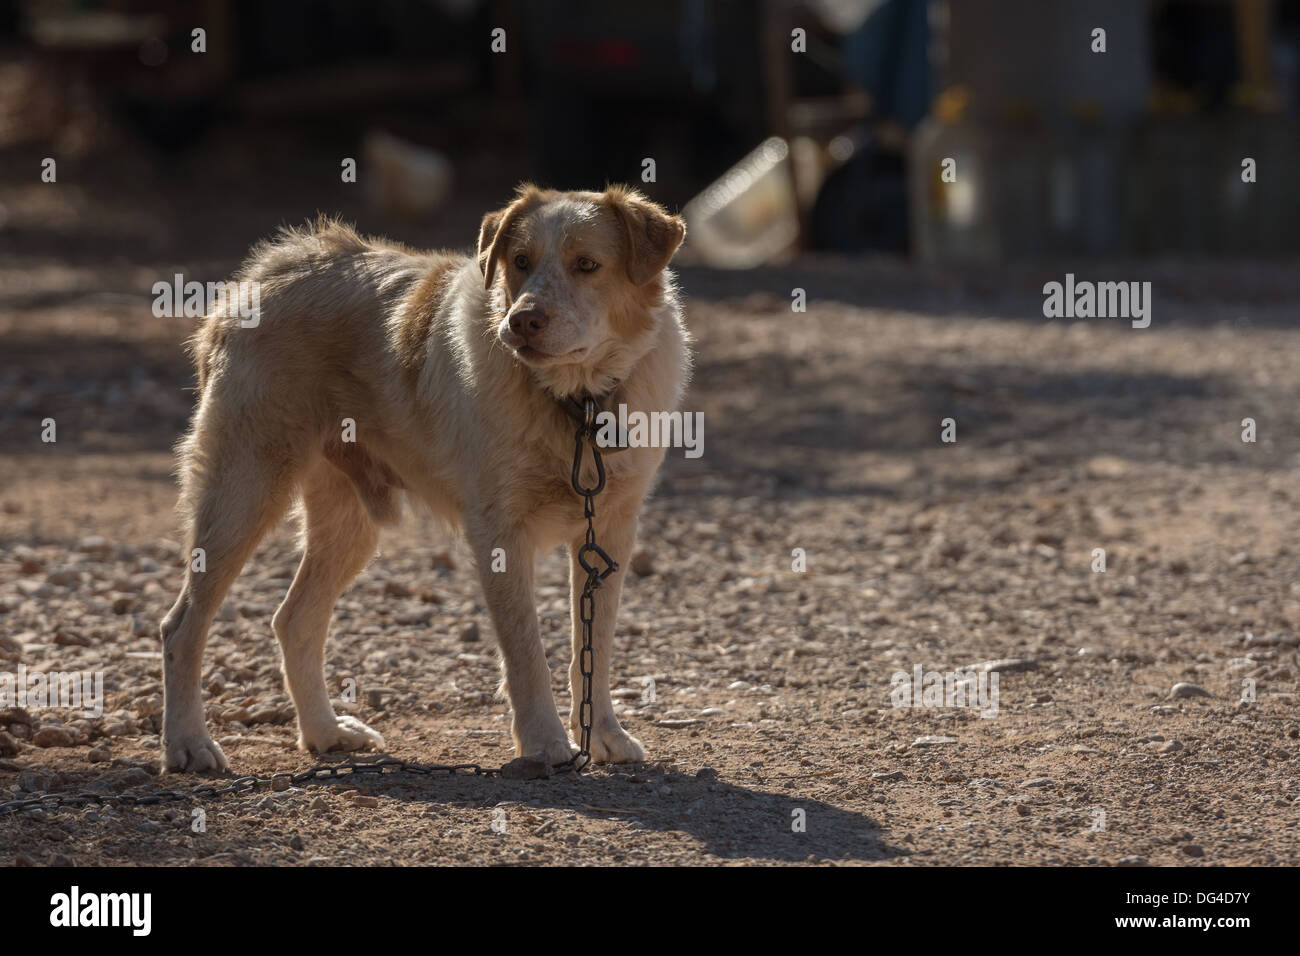 Large male dog chained up - Stock Image